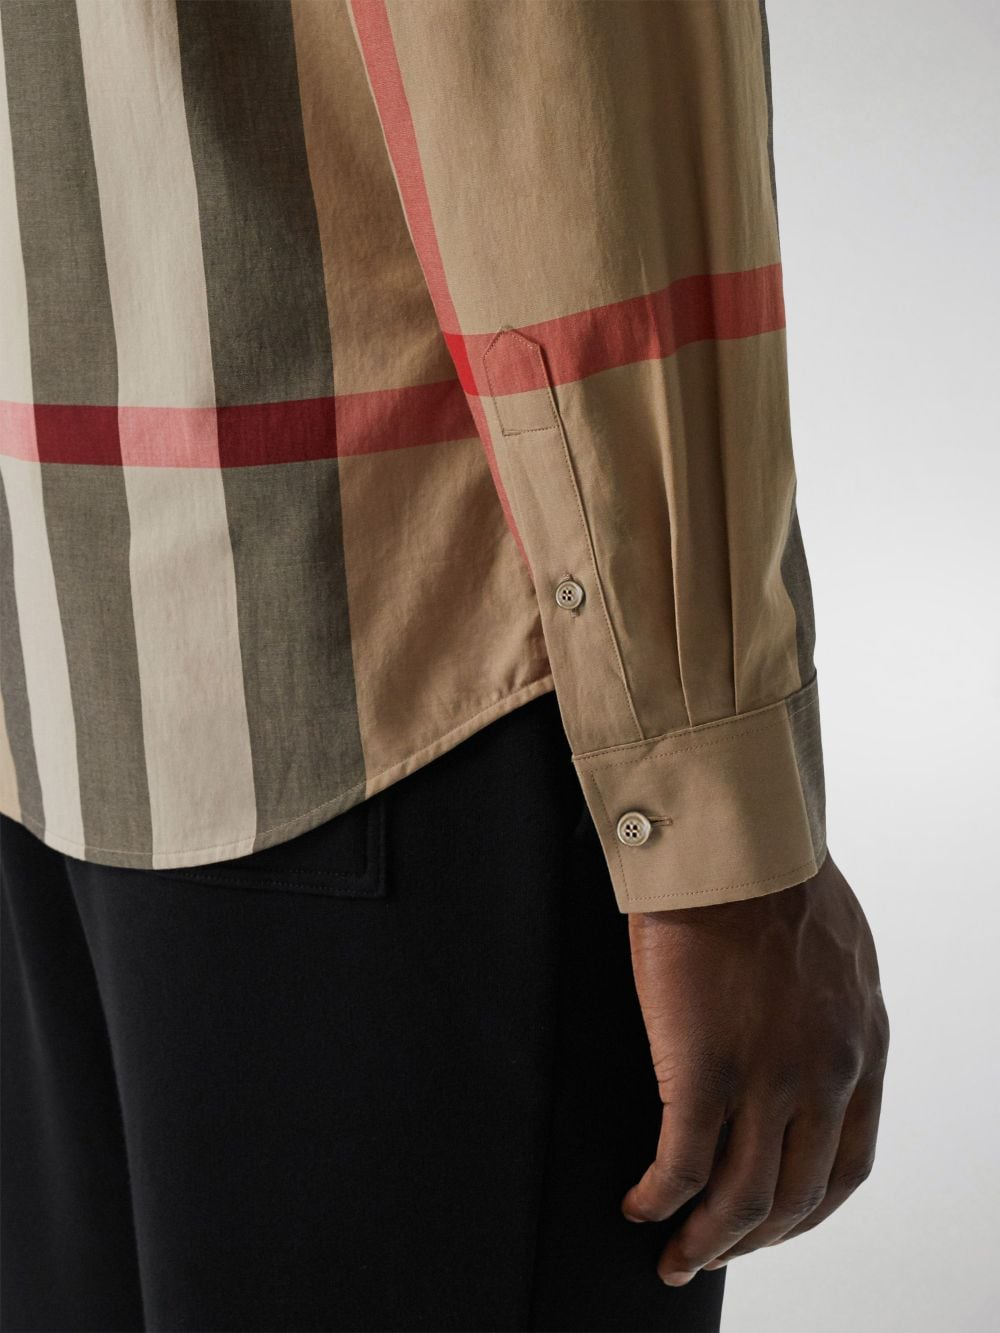 Beige cotton shirt in Burberry Check print  BURBERRY |  | 8010213-SOMERTONA7028